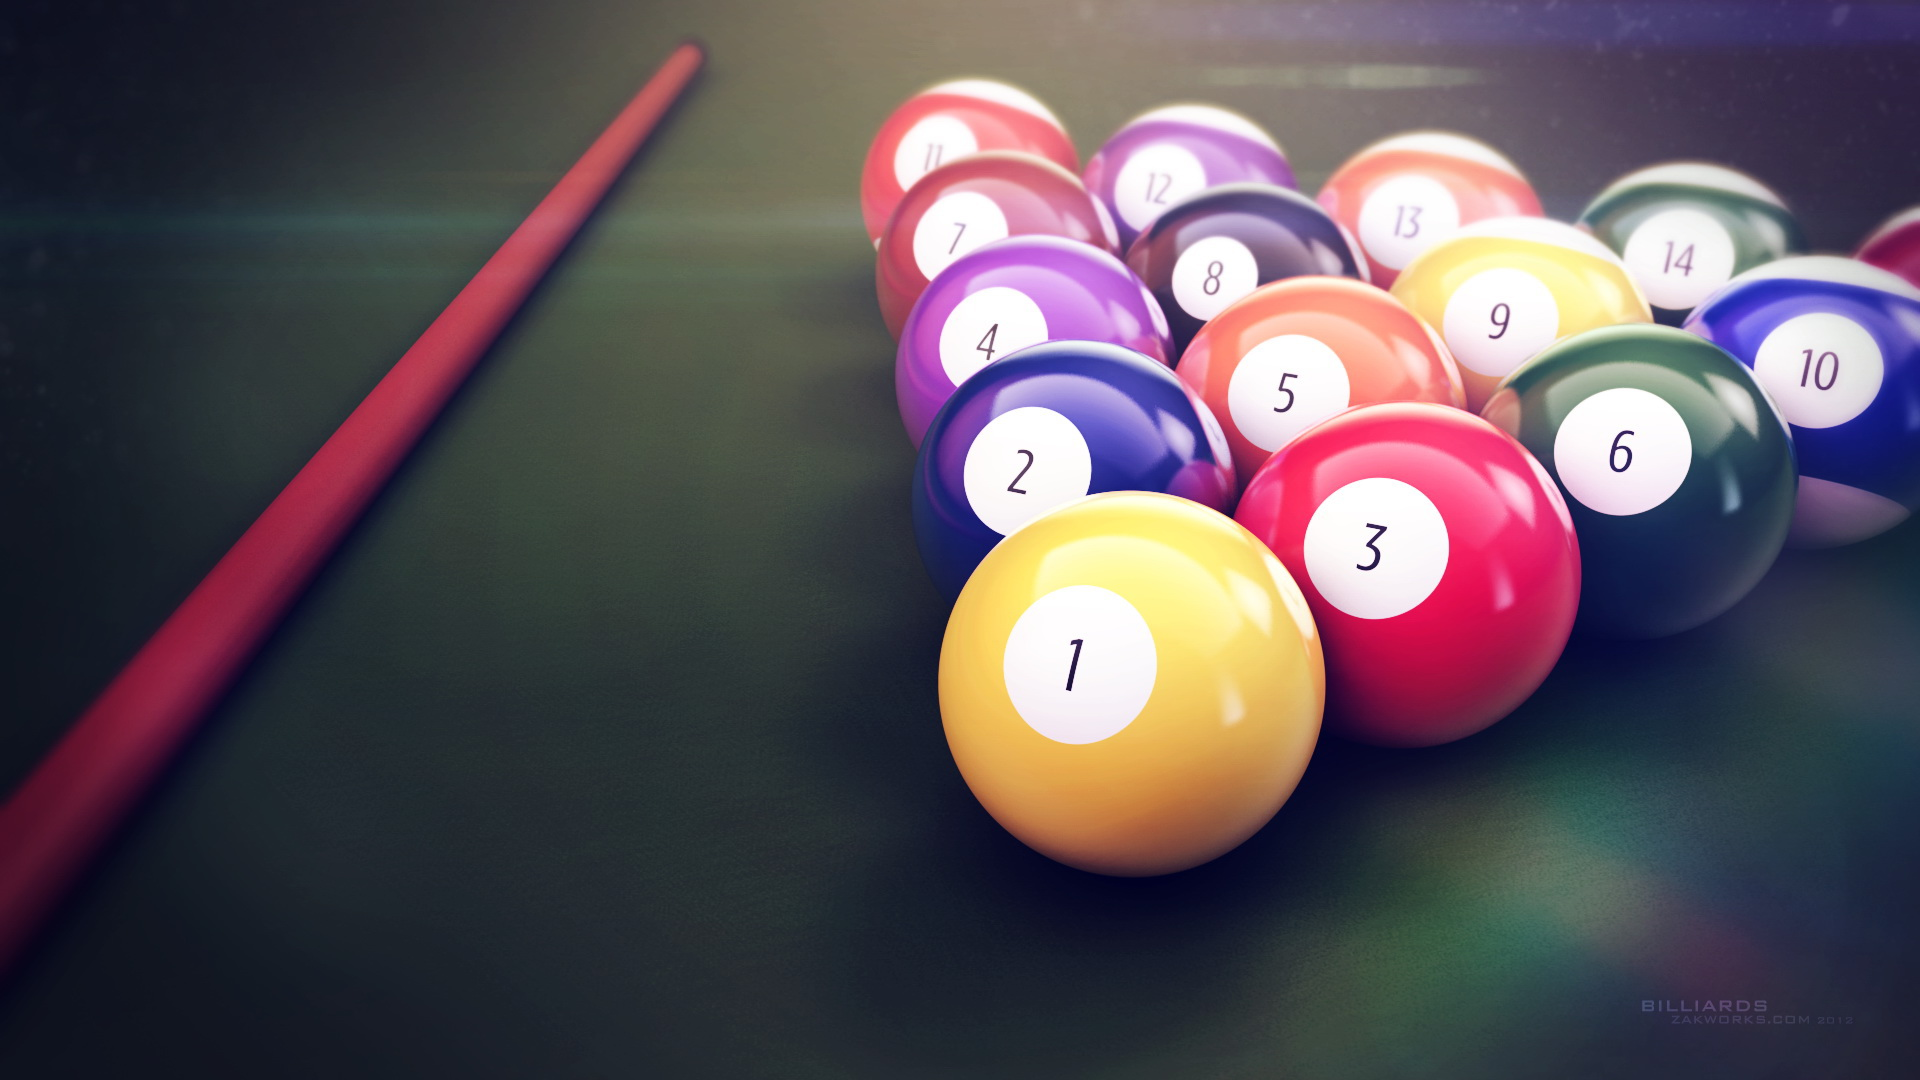 Billiards images Billiards HD wallpaper and background photos 1920x1080